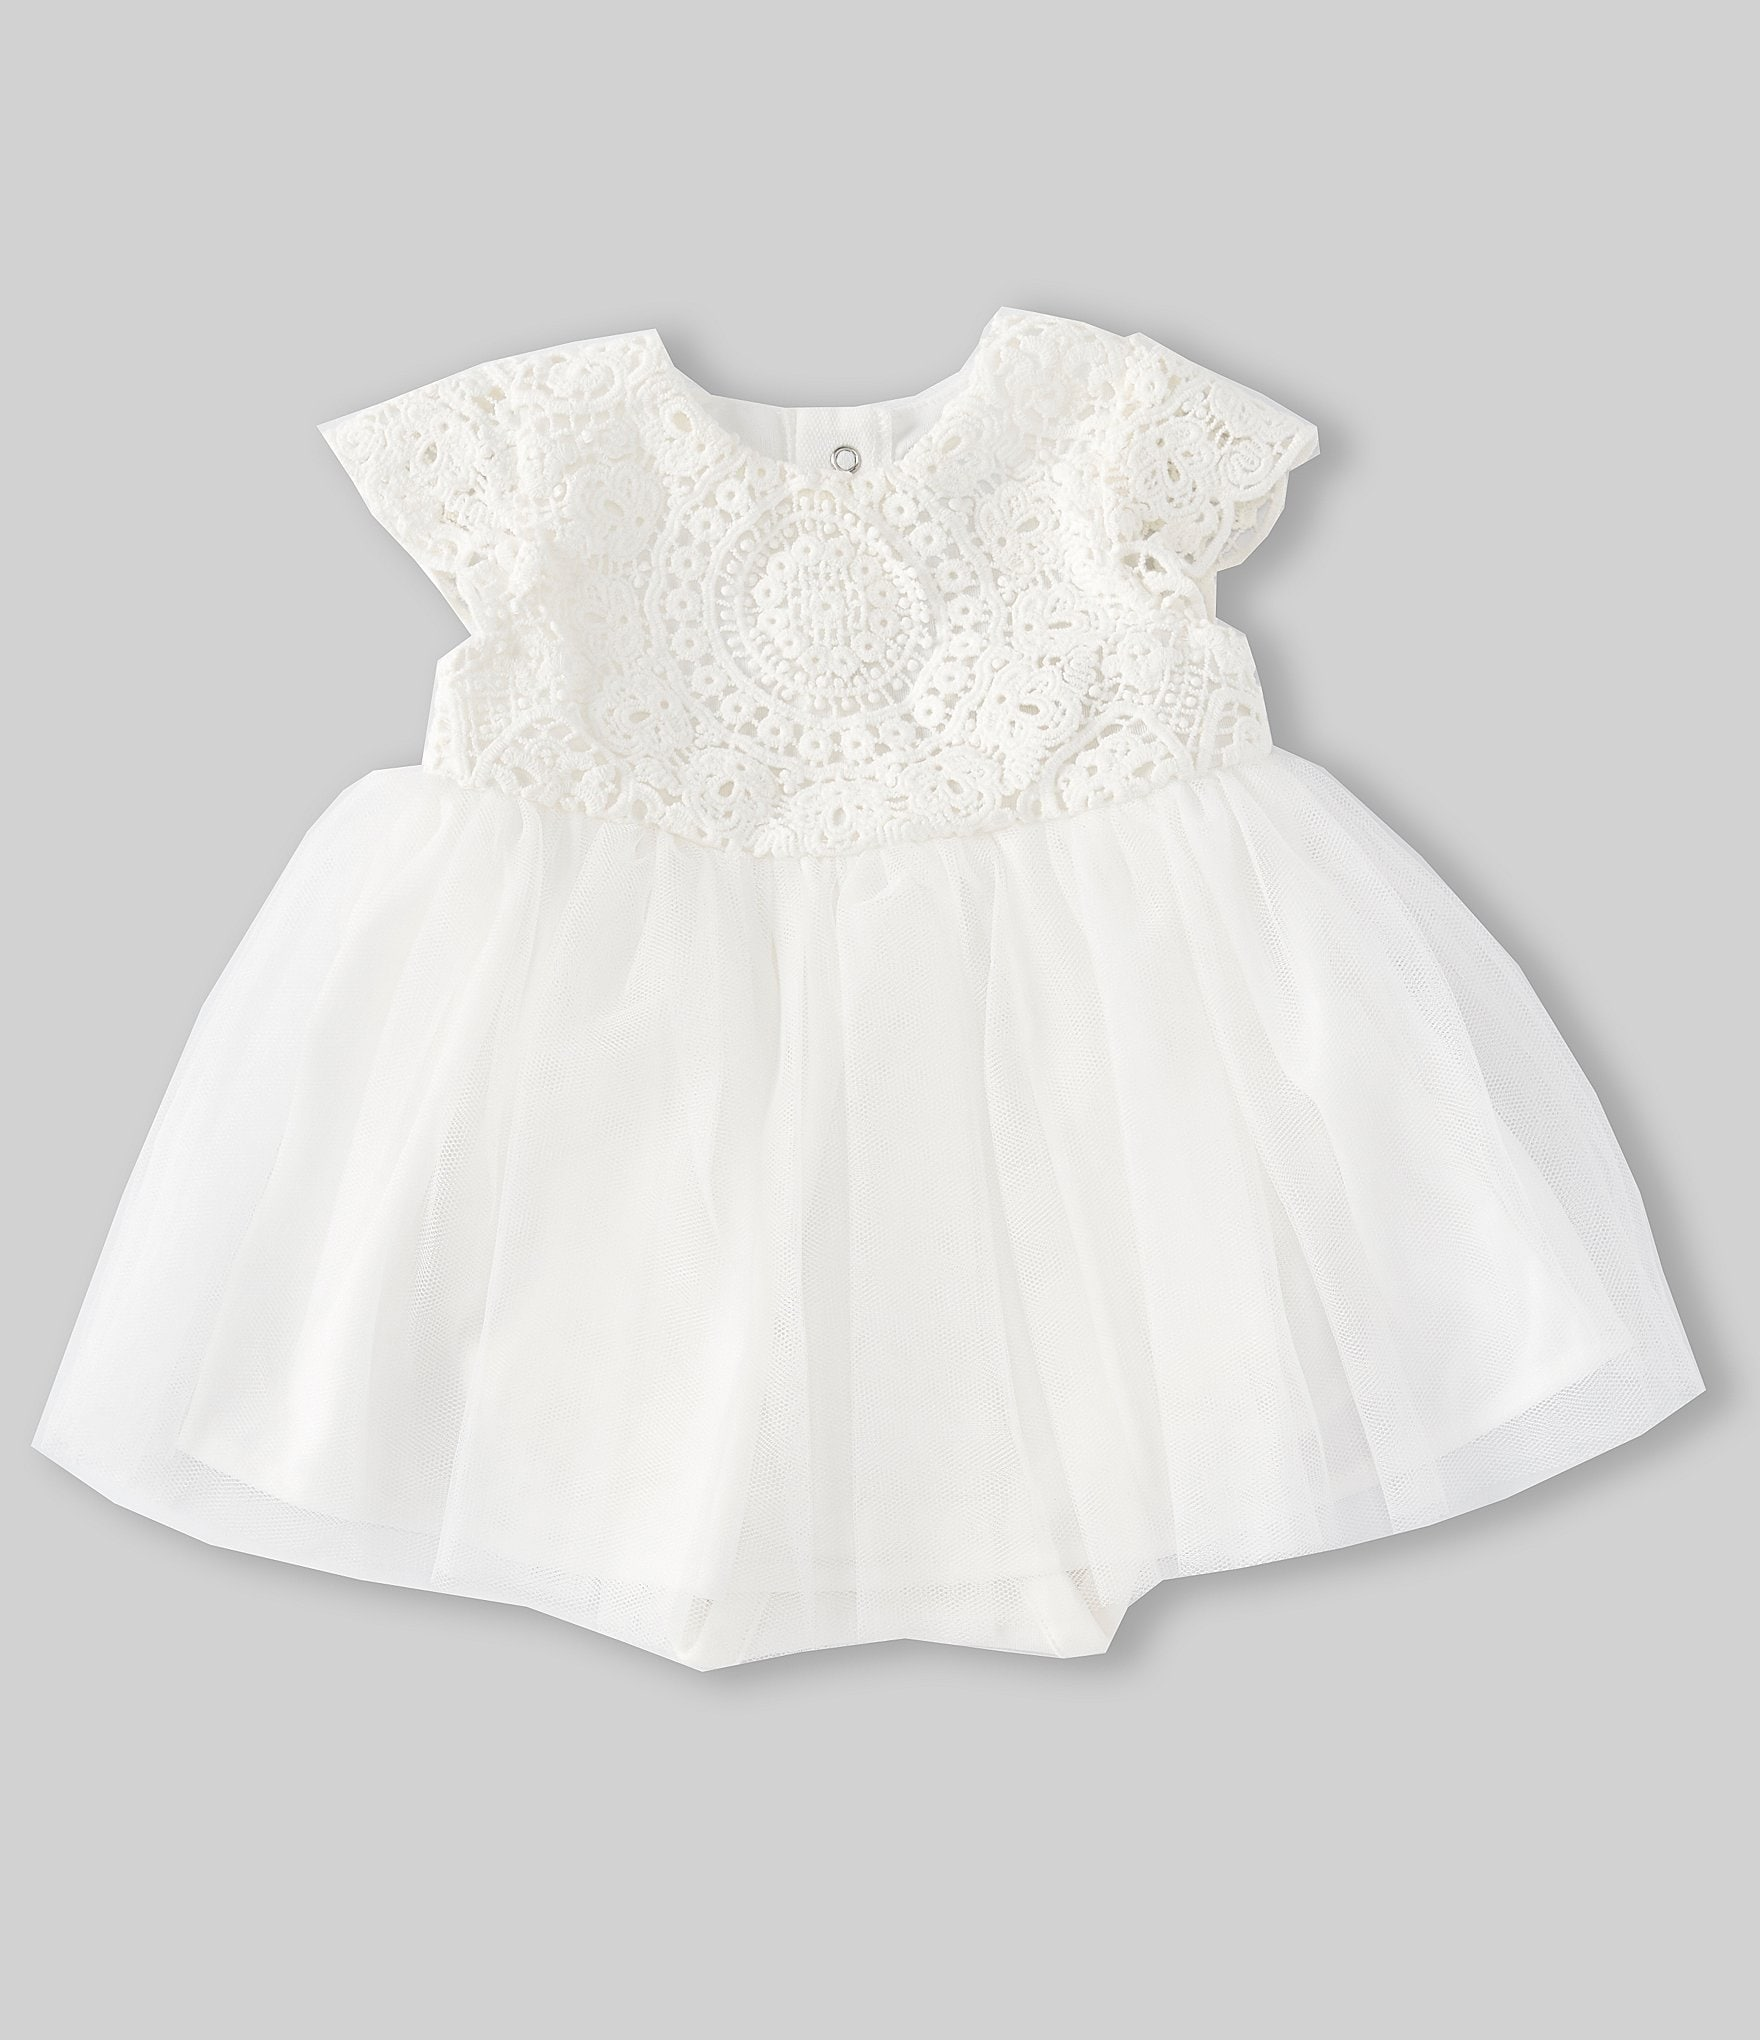 7440bfcce Baby Girl Clothing | Dillard's